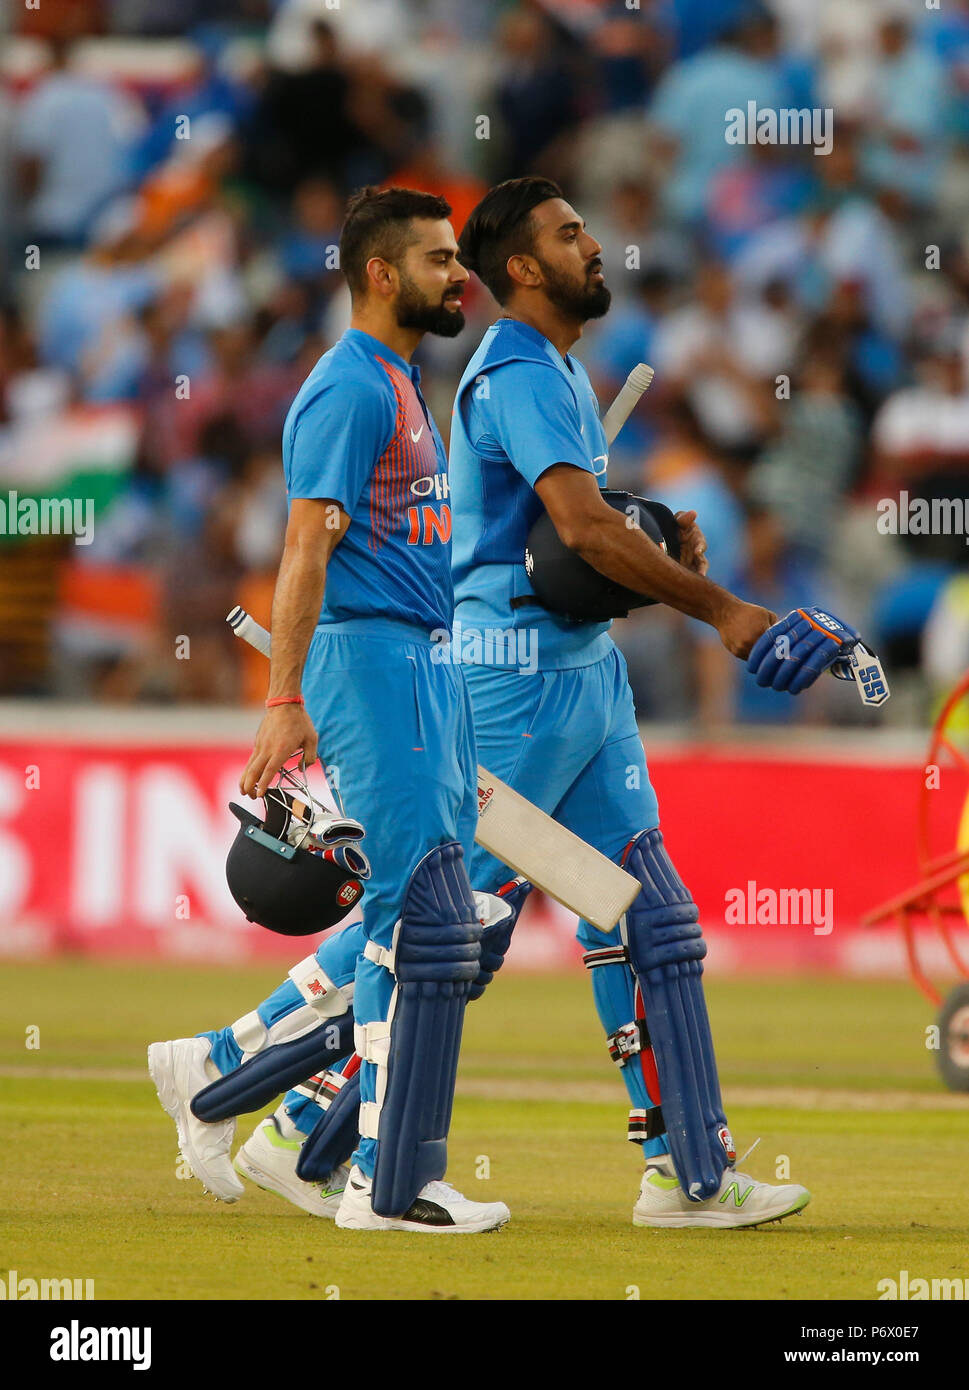 Emirates Old Trafford, Manchester, UK. 3rd July, 2018. International Twenty20 cricket, England versus India; Virat Kohli and KL Rahul of India walk off the field having guided India to victory by eight wickets Credit: Action Plus Sports/Alamy Live News - Stock Image